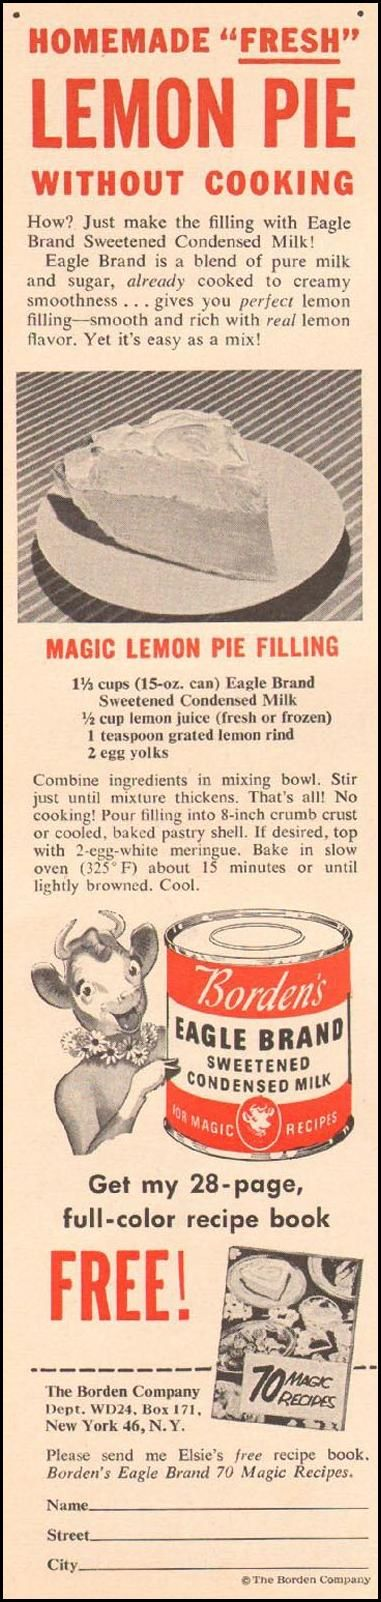 Lemon Pie Without Cooking- BORDEN'S EAGLE BRAND SWEETENED CONDENSED MILK WOMAN'S DAY 02/01/1954 p. 125